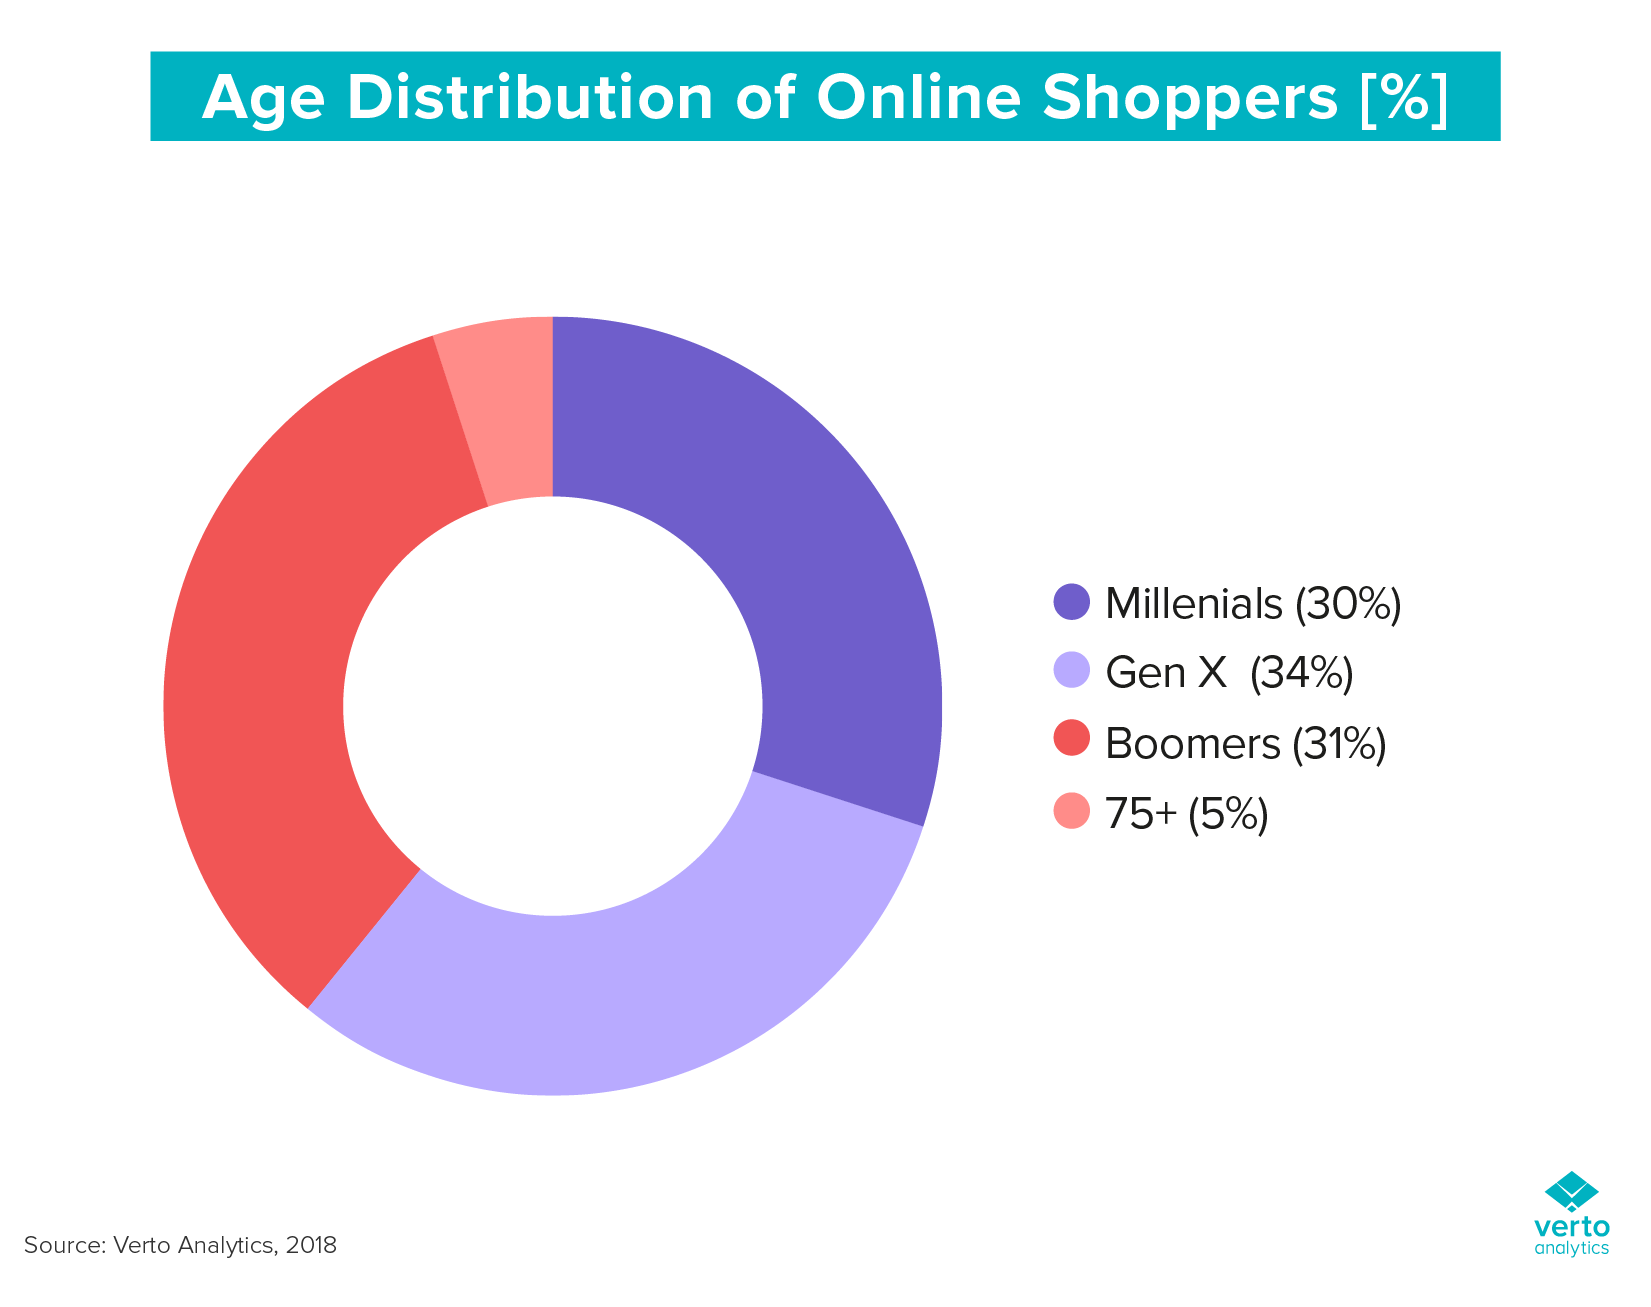 Age distribution of online shoppers